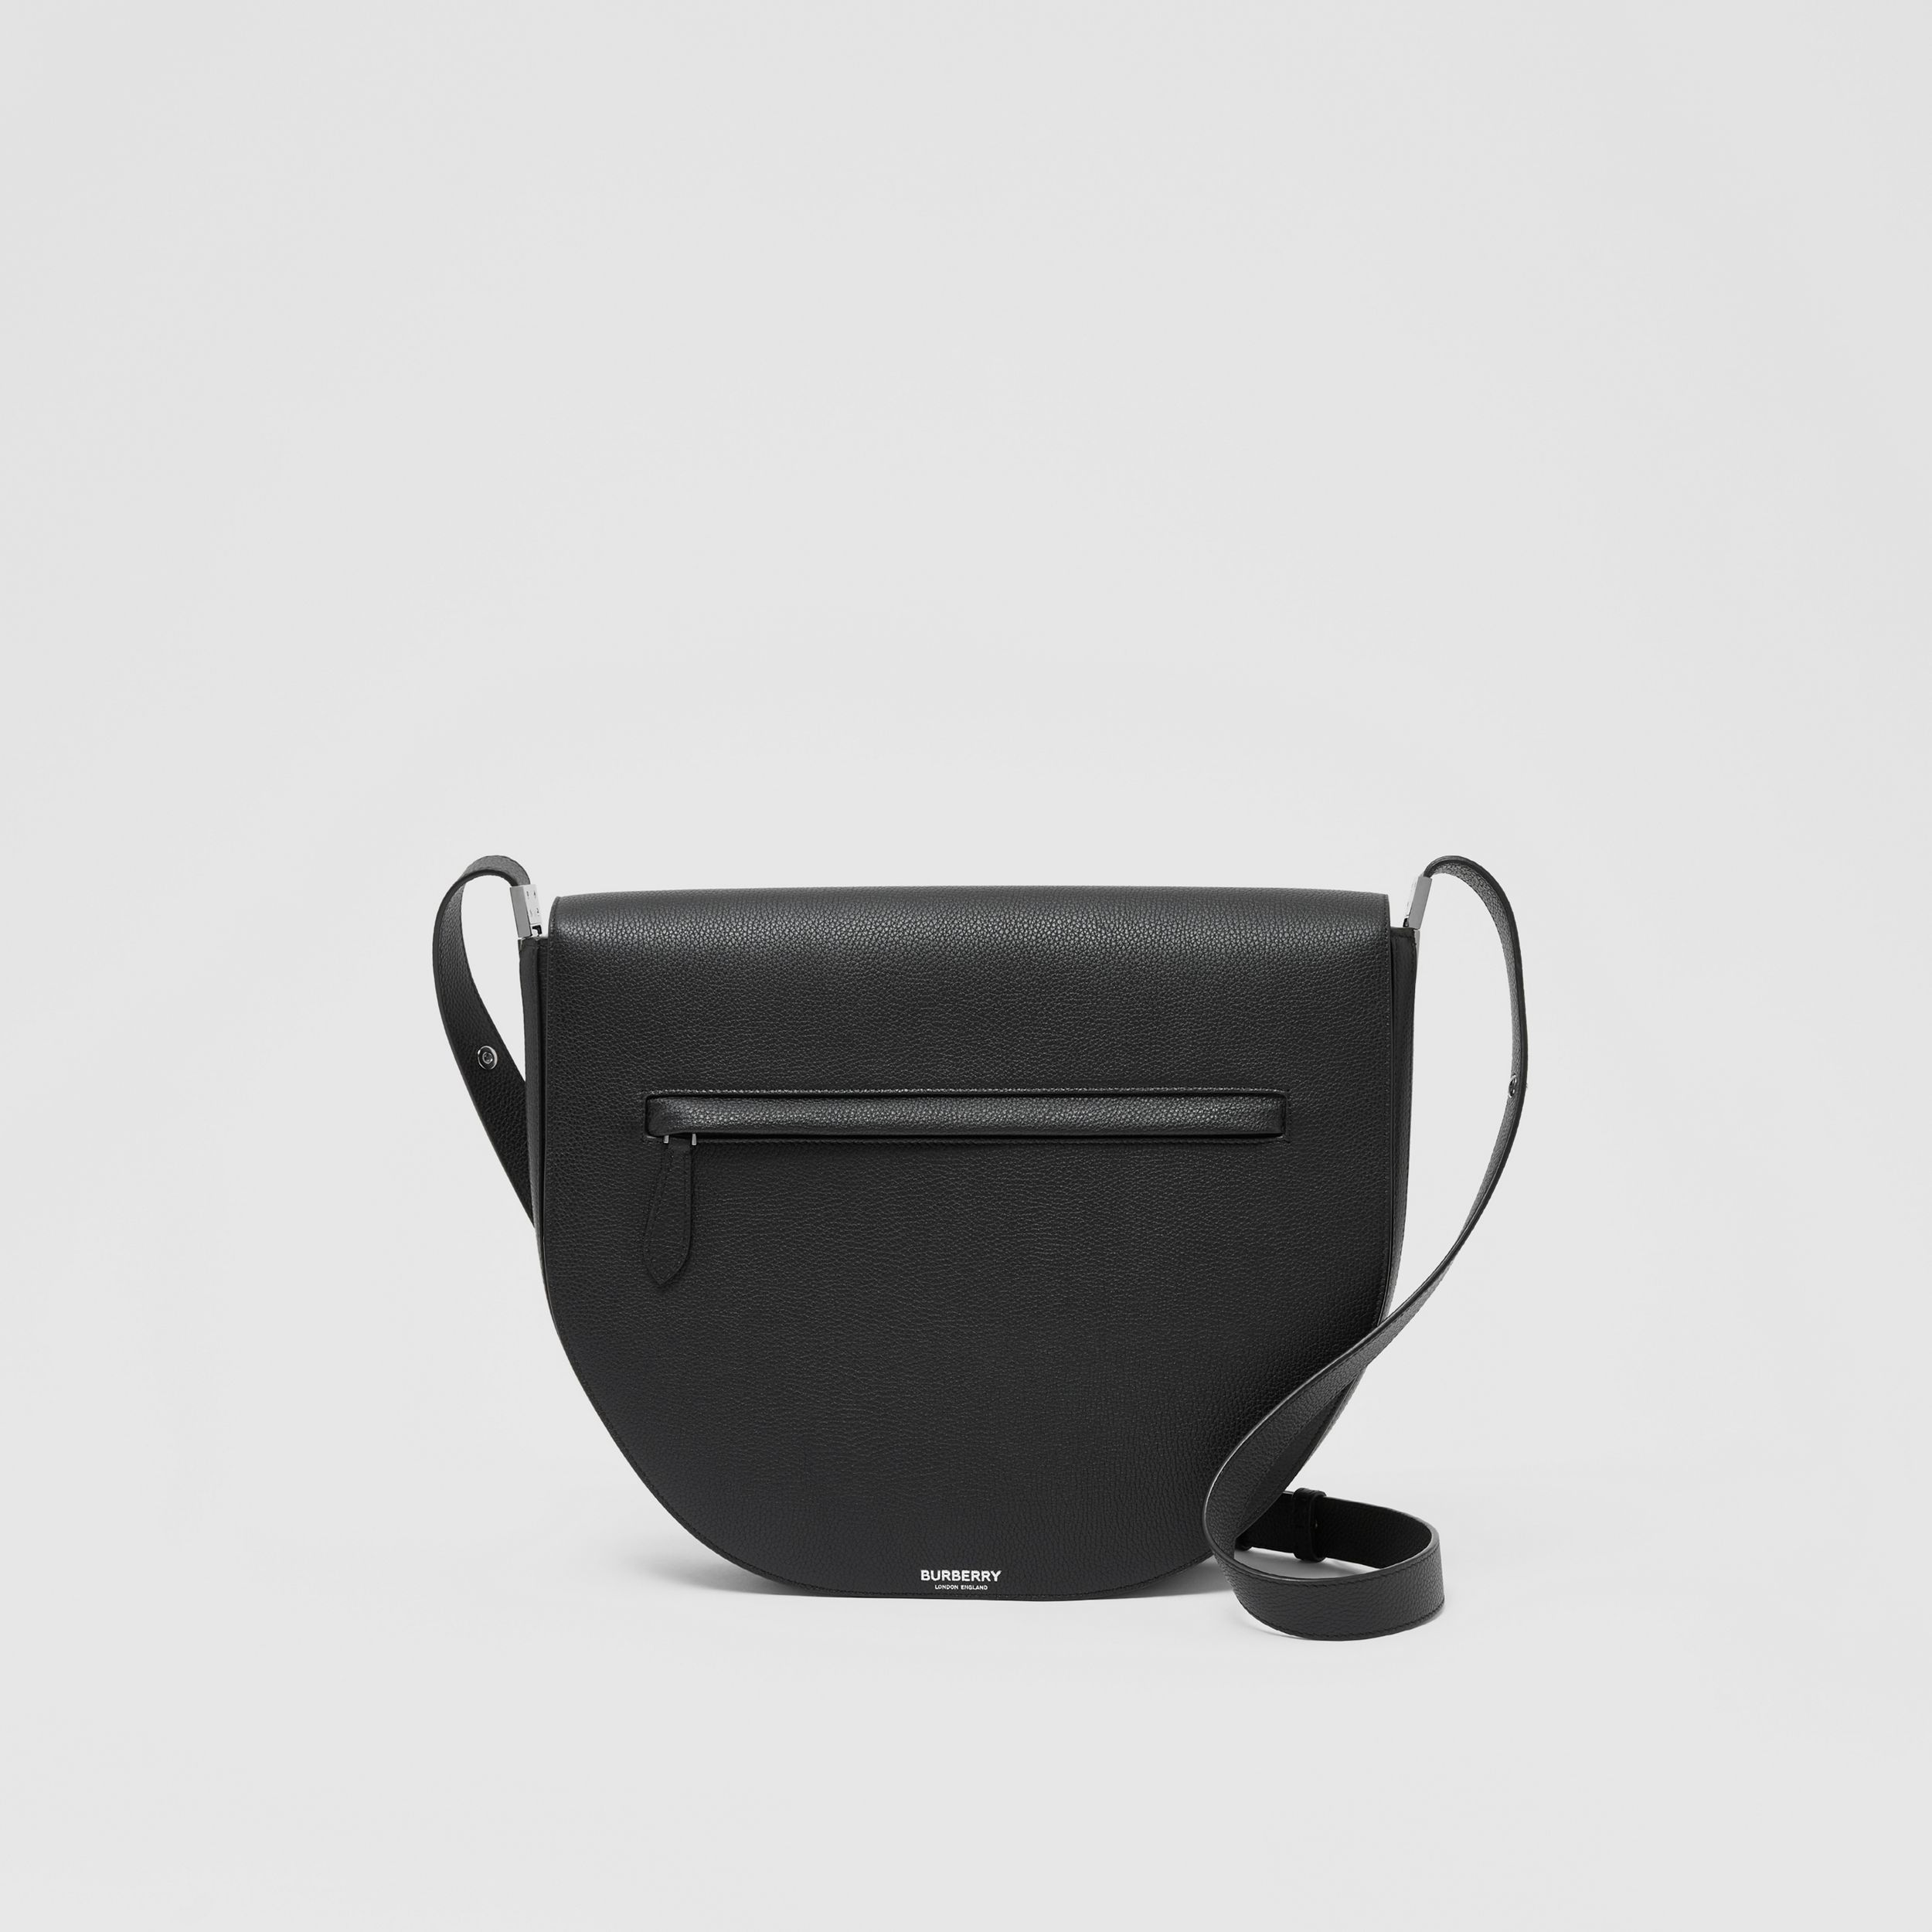 Leather Olympia Crossbody Bag in Black | Burberry Australia - 1